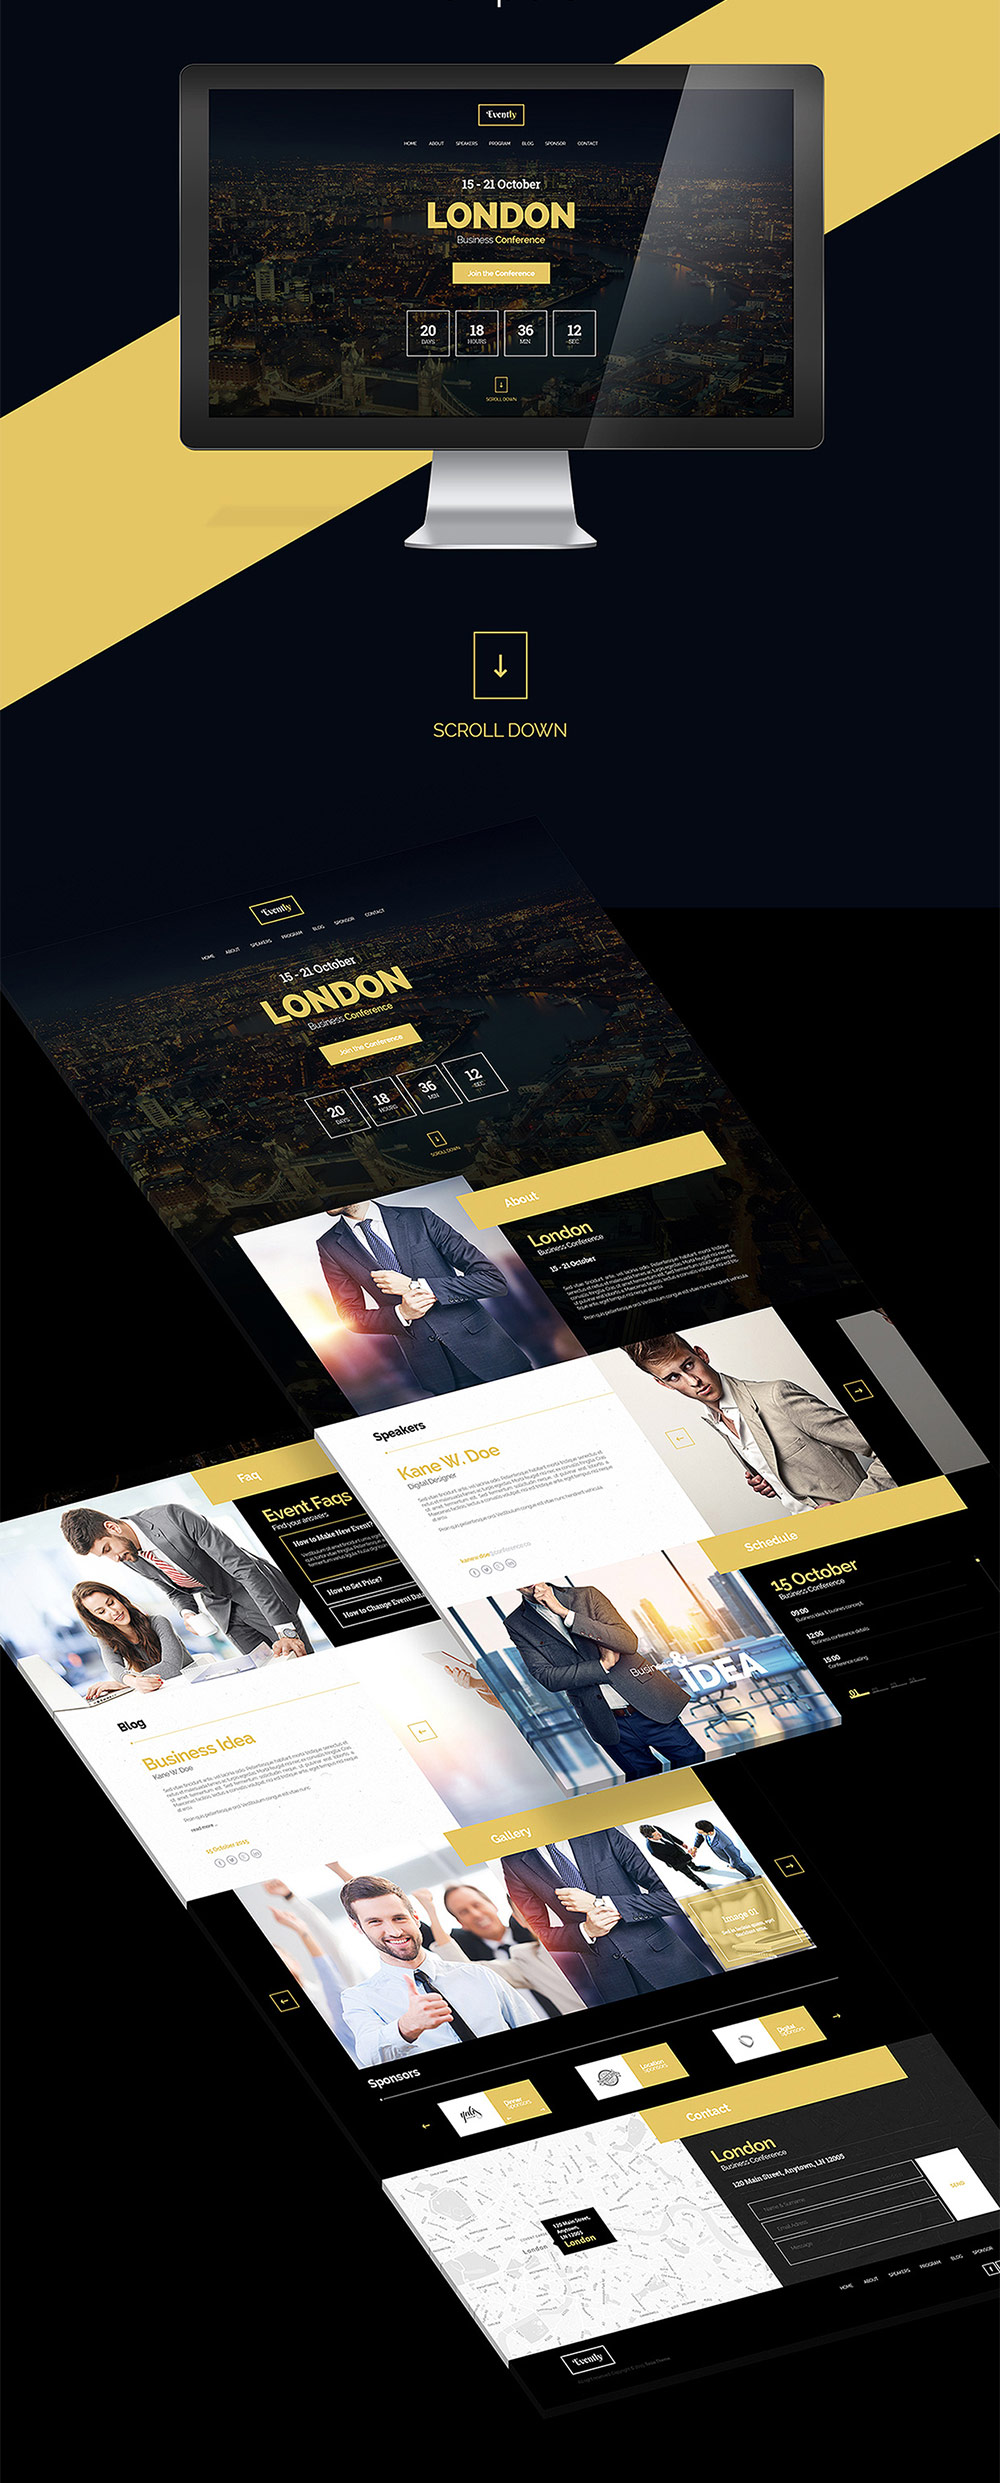 Business Event Invitation Website Template PSD Download Download PSD – Free Event Invitation Templates